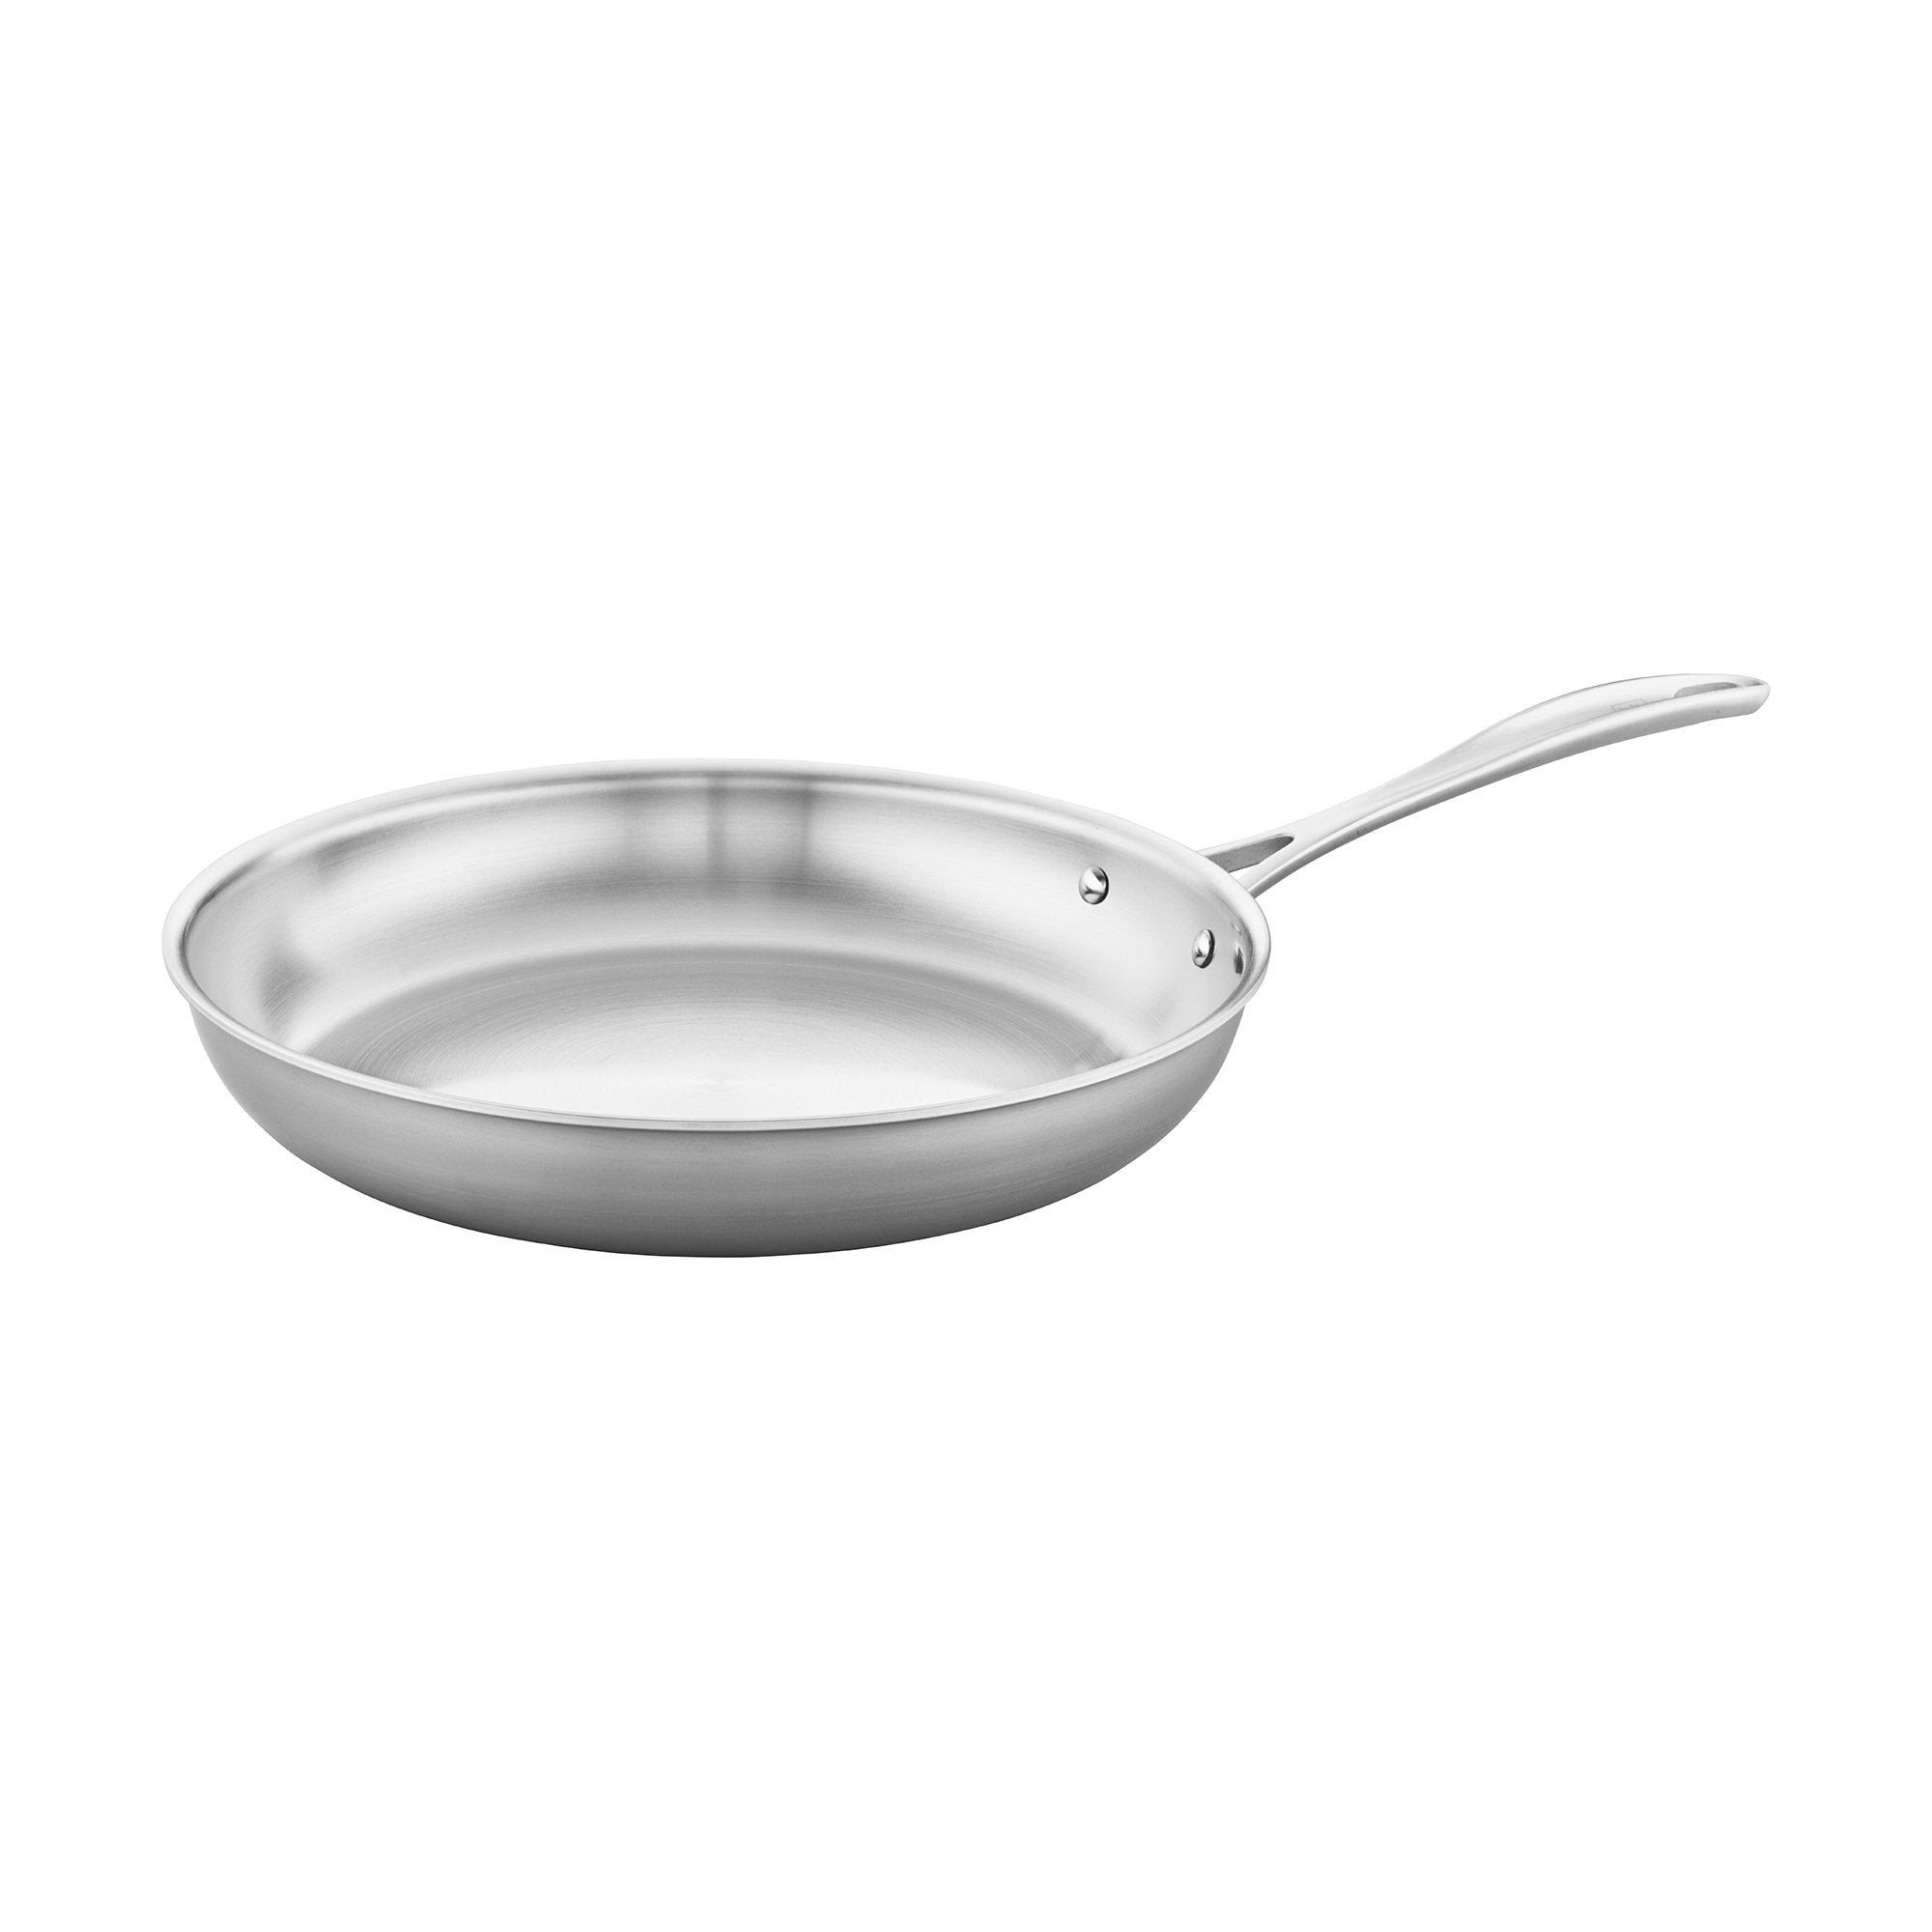 ZWILLING Spirit 3-ply 12'' Stainless Steel Fry Pan